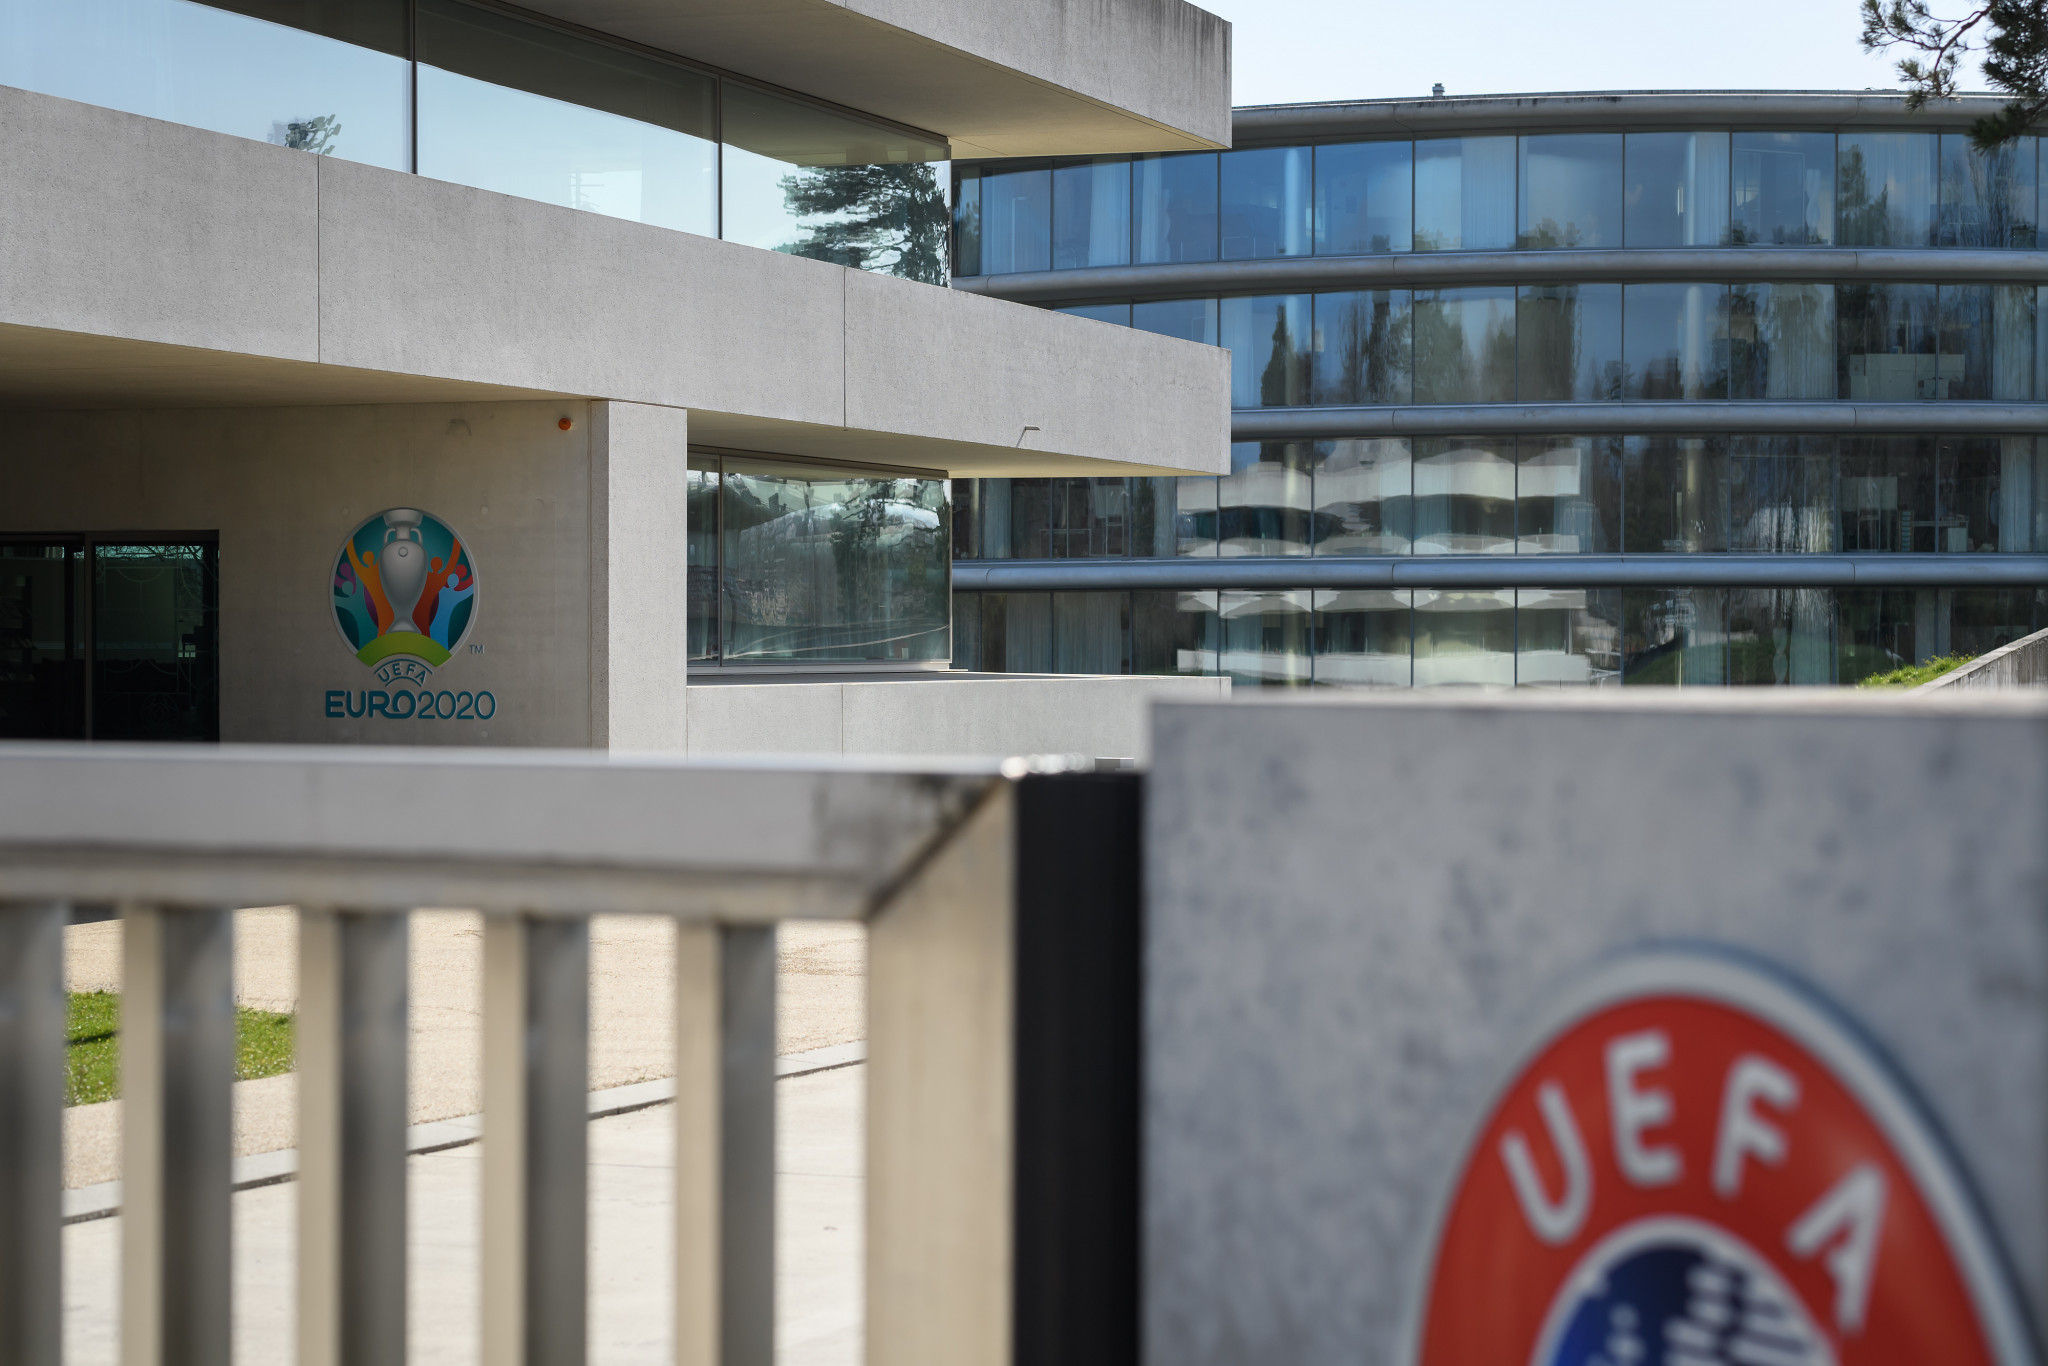 UEFA were forced to push back the UEFA Euros to 2021 due to the coronavirus crisis ©Getty Images